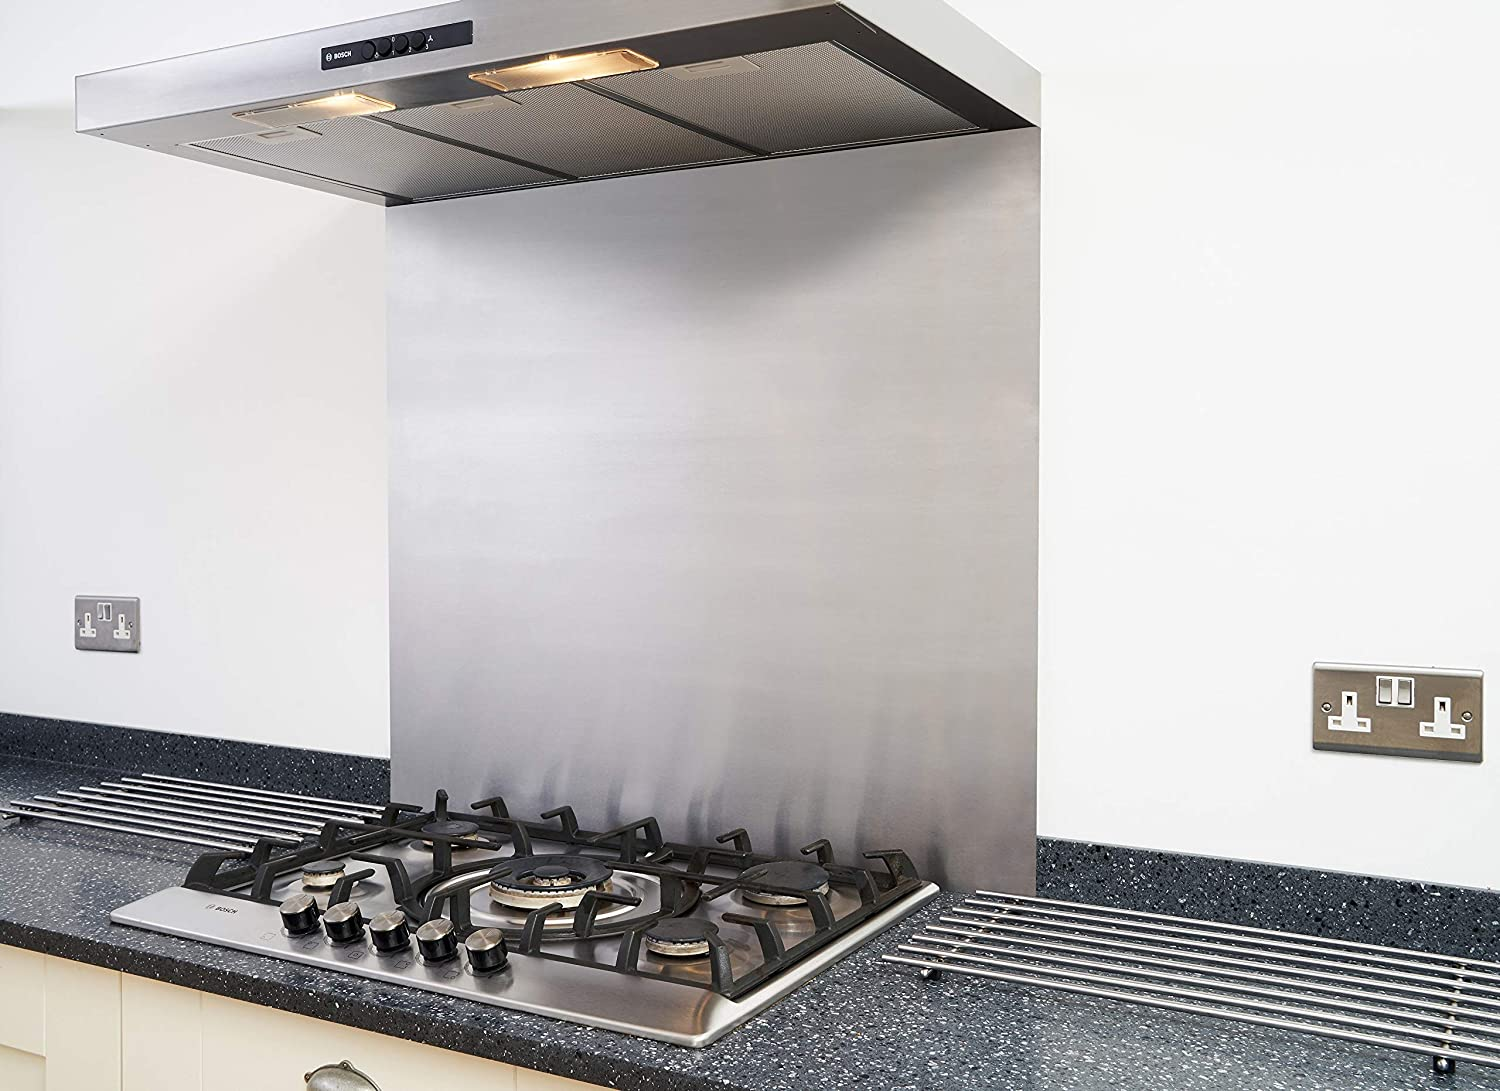 Fire Door Guru® Satin Stainless Steel Splashback for Kitchen/Cooker Hood - 600 x 450mm - 1.2mm Thick - Easy to Install